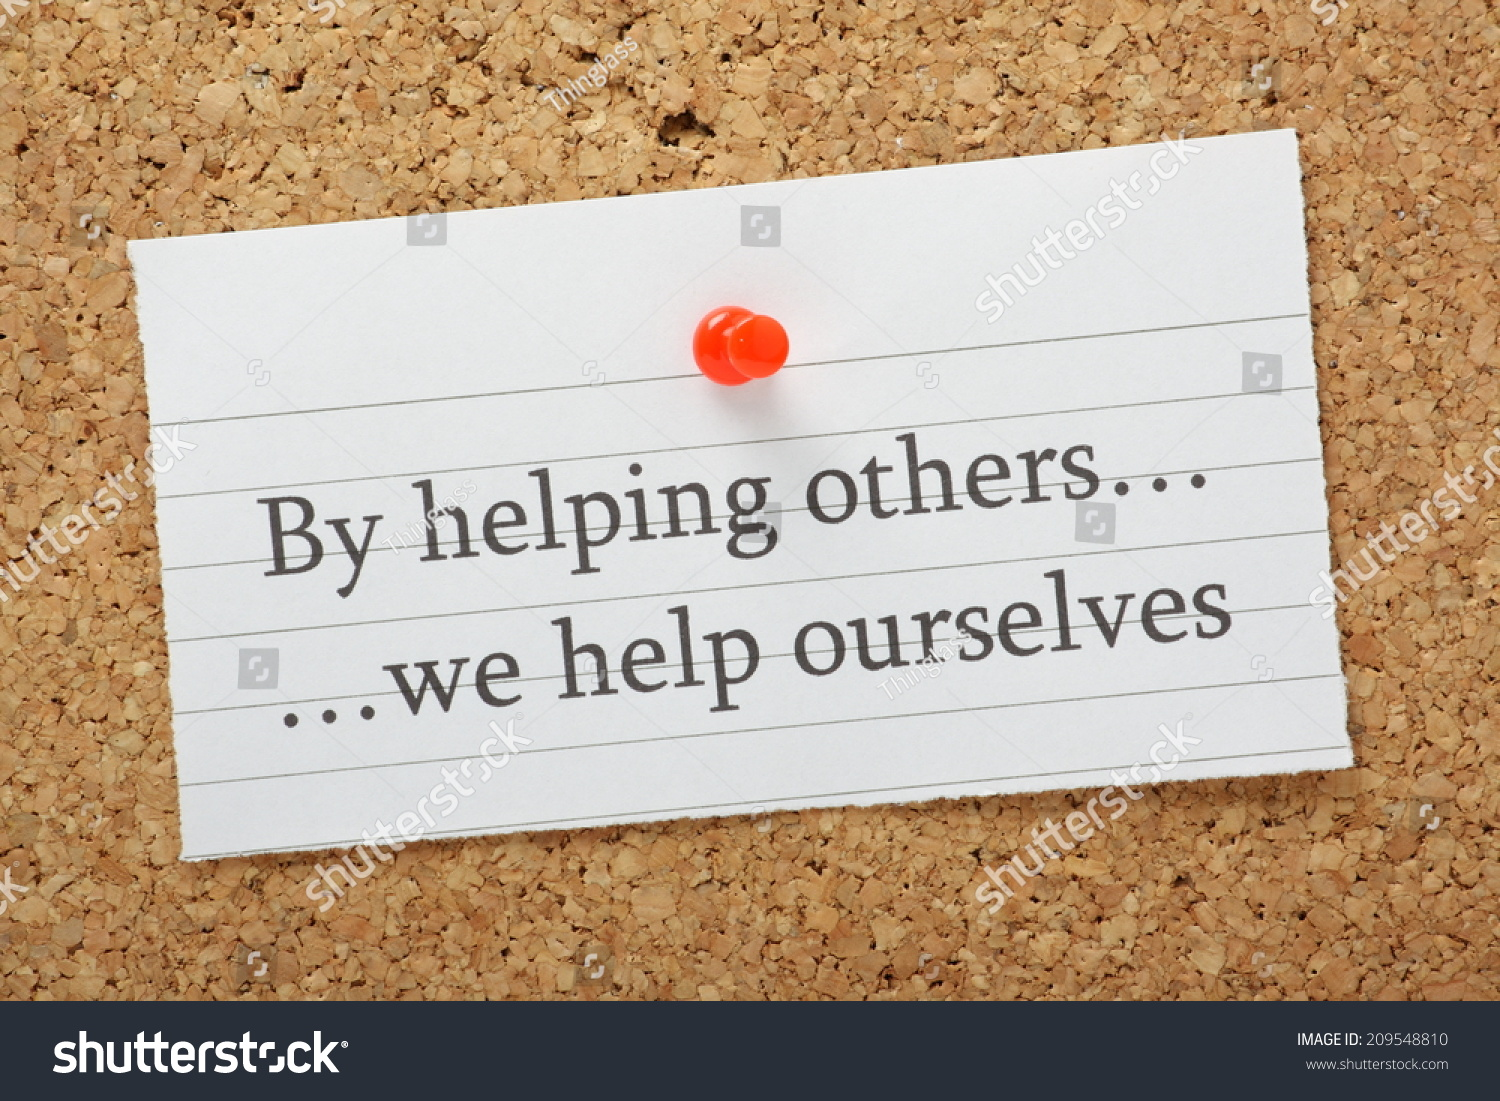 phrase by helping others we help stock photo shutterstock the phrase by helping others we help ourselves typed on a piece of lined paper pinned